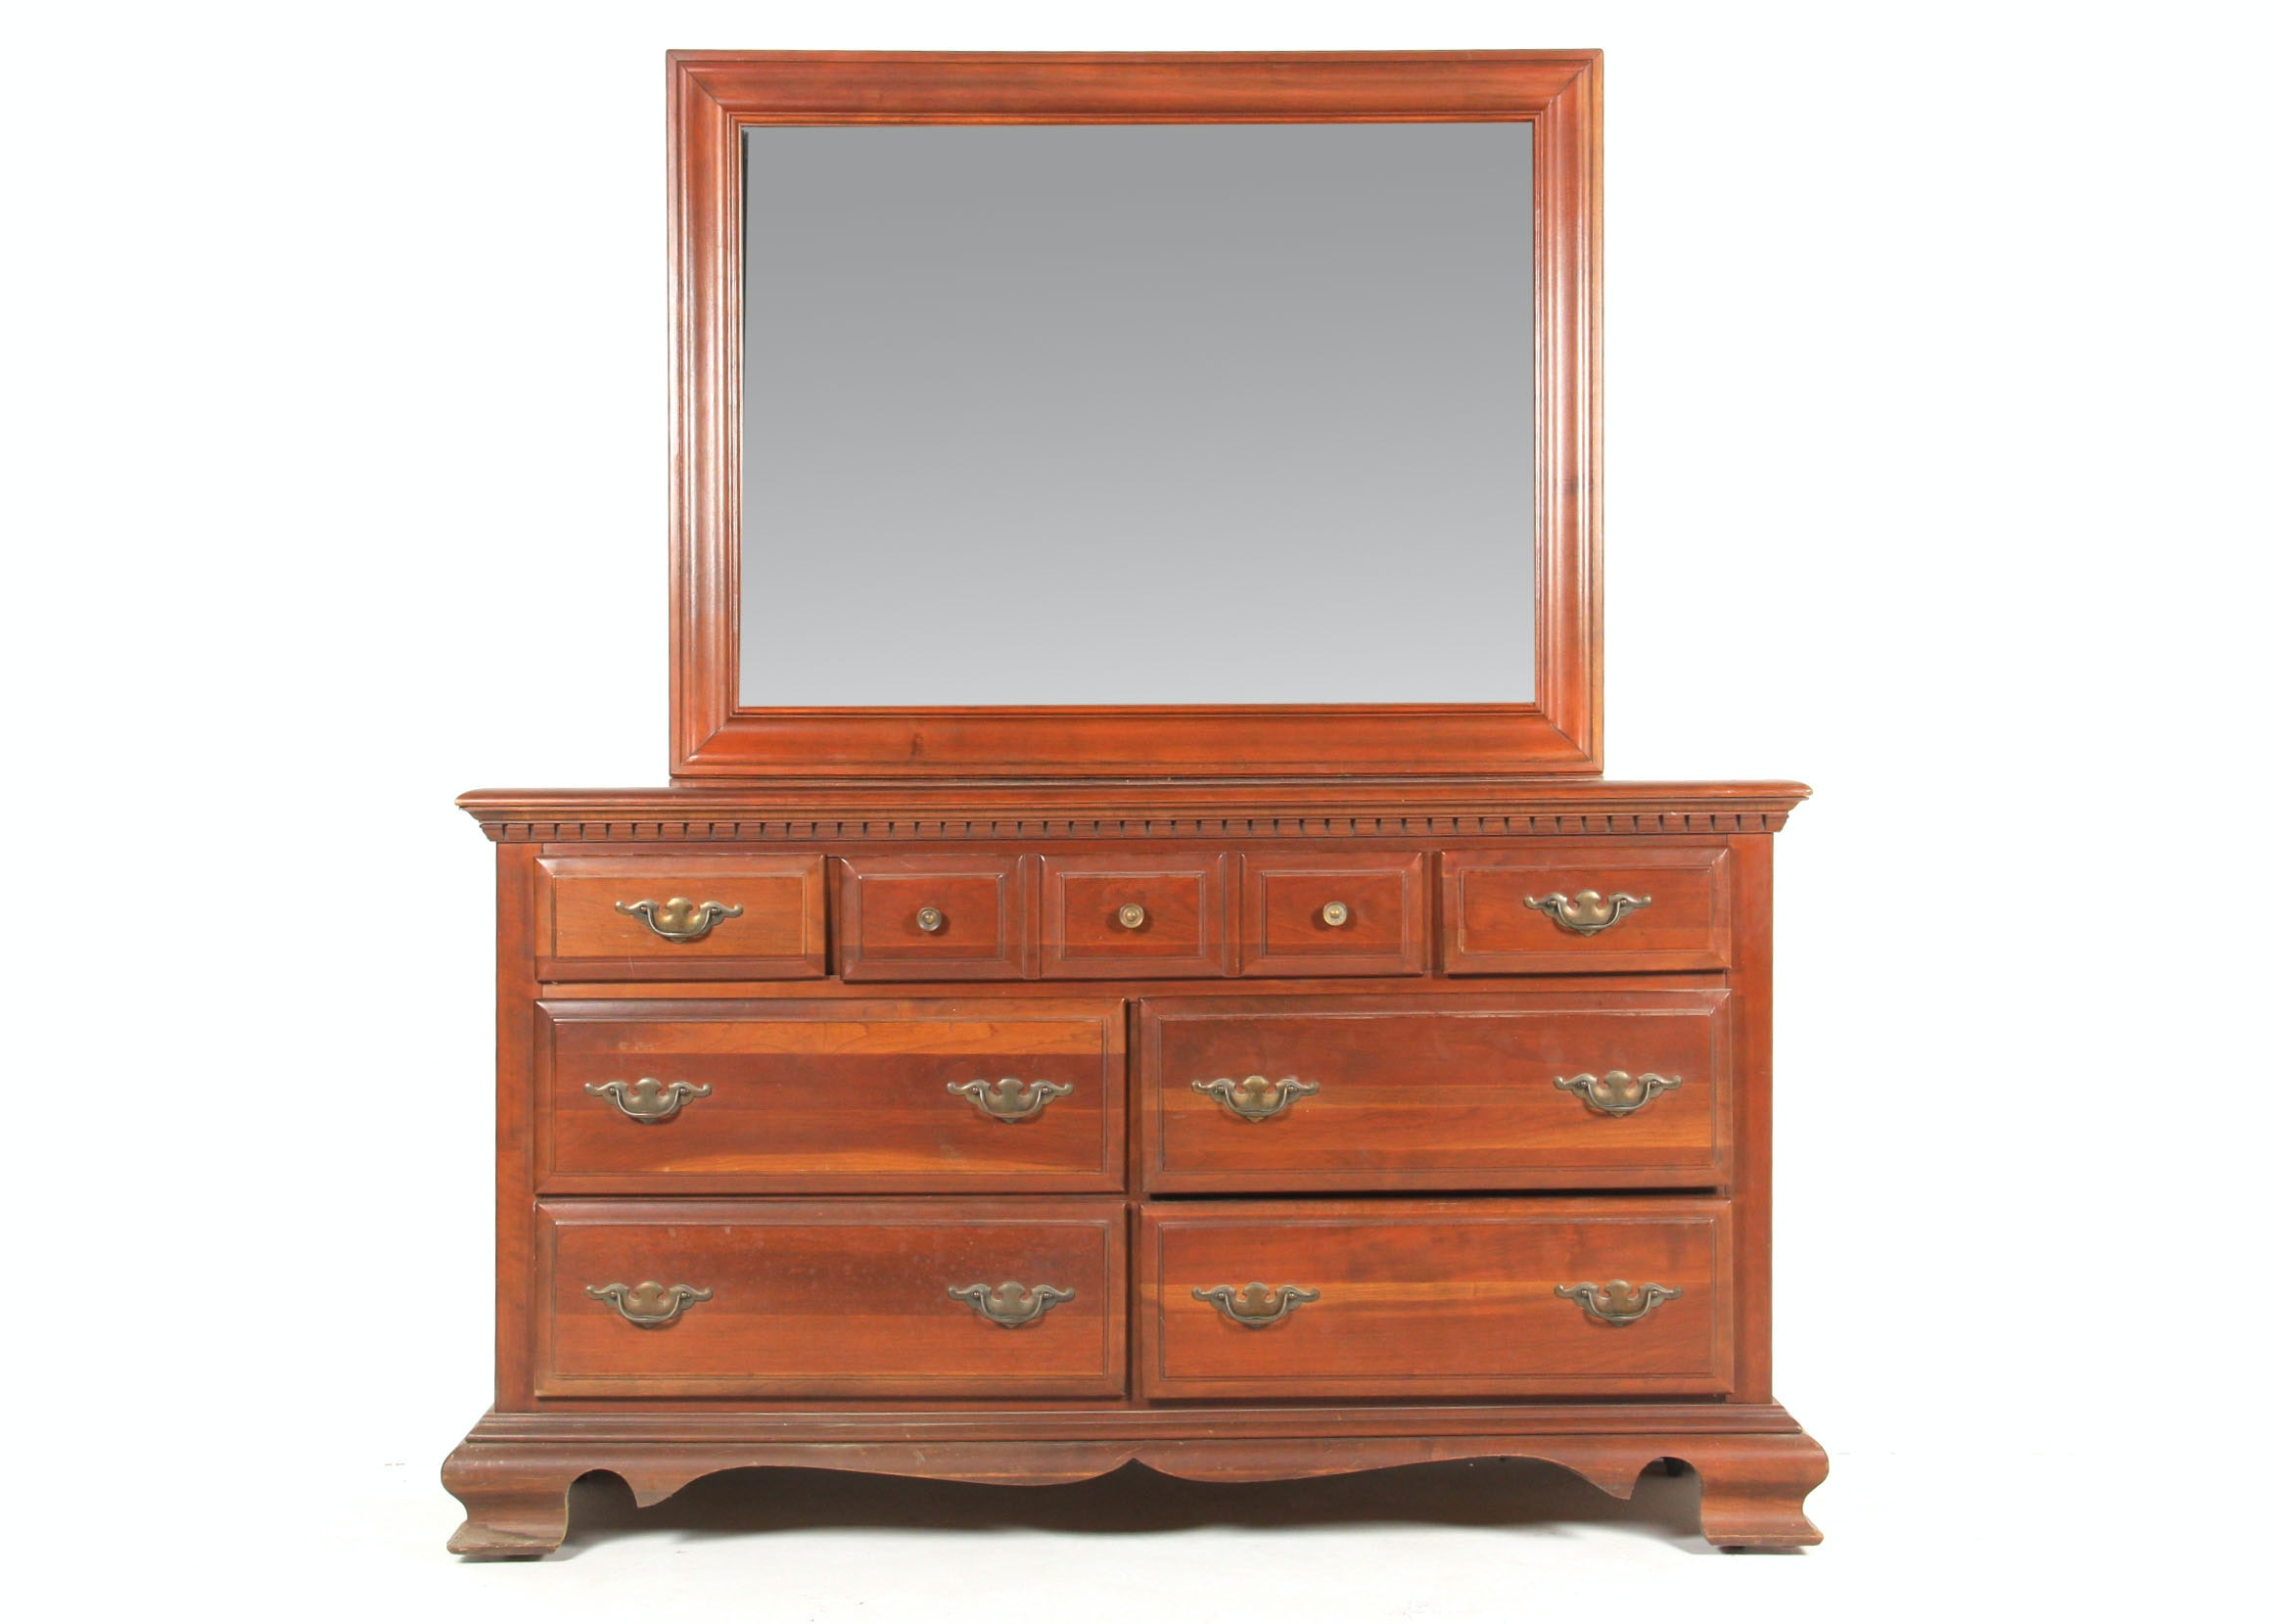 Pennsylvania House Cherry Bureau with Mirror